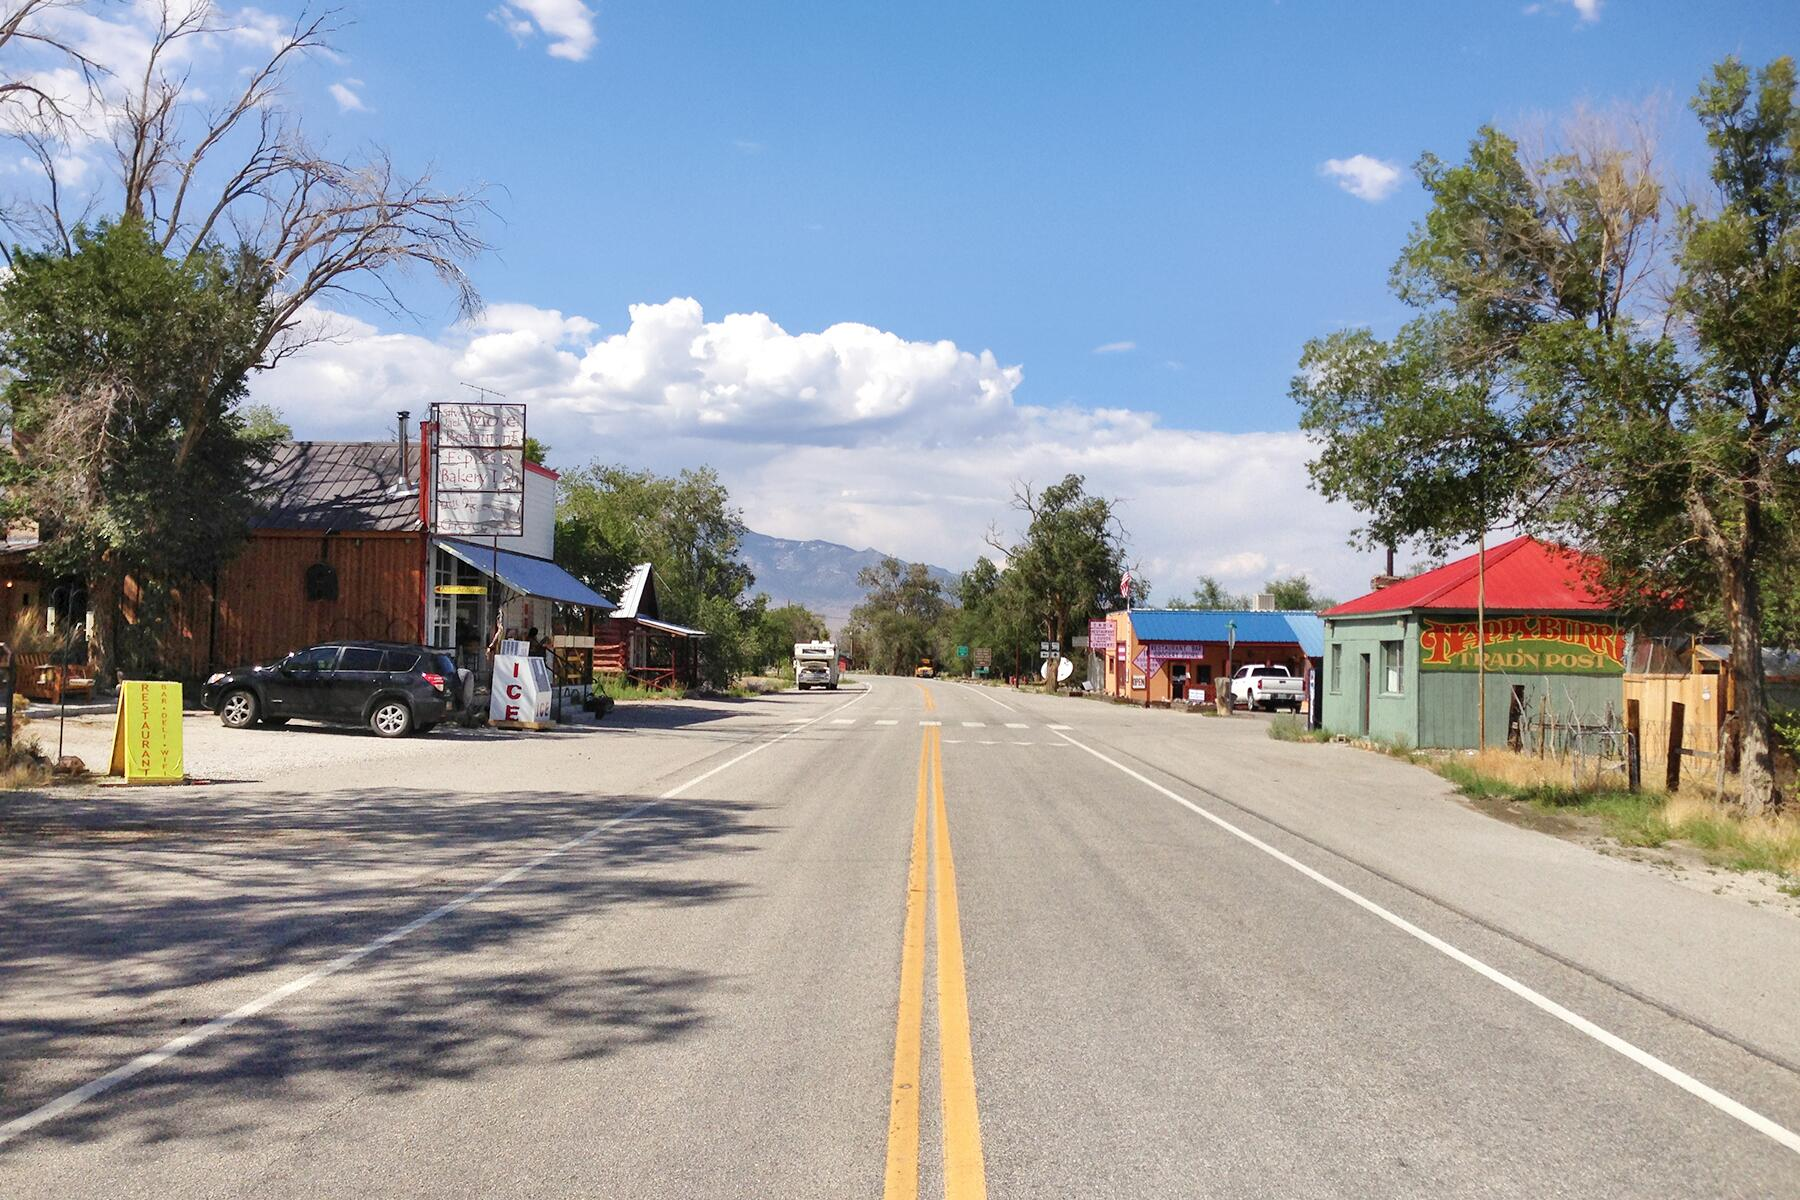 Austin to Baker, Nevada